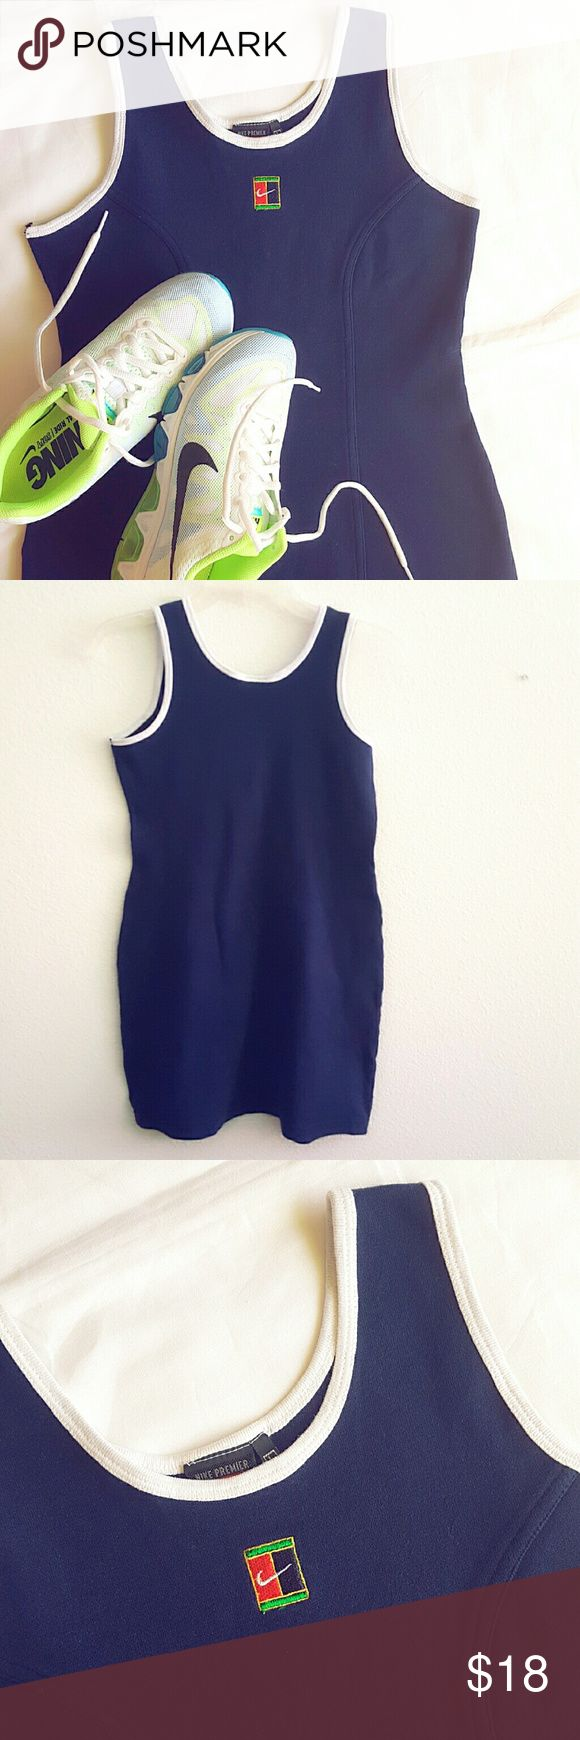 Nike dress Nike Premier, dark blue 100% cotton. Beautiful, sporty and classy. Fitted form and stretchy, to better meet performance needs. Hits mid thigh. Preloved, in really good condition,  only flaws are two small tears on armpits (see last pic). Nike Dresses Mini